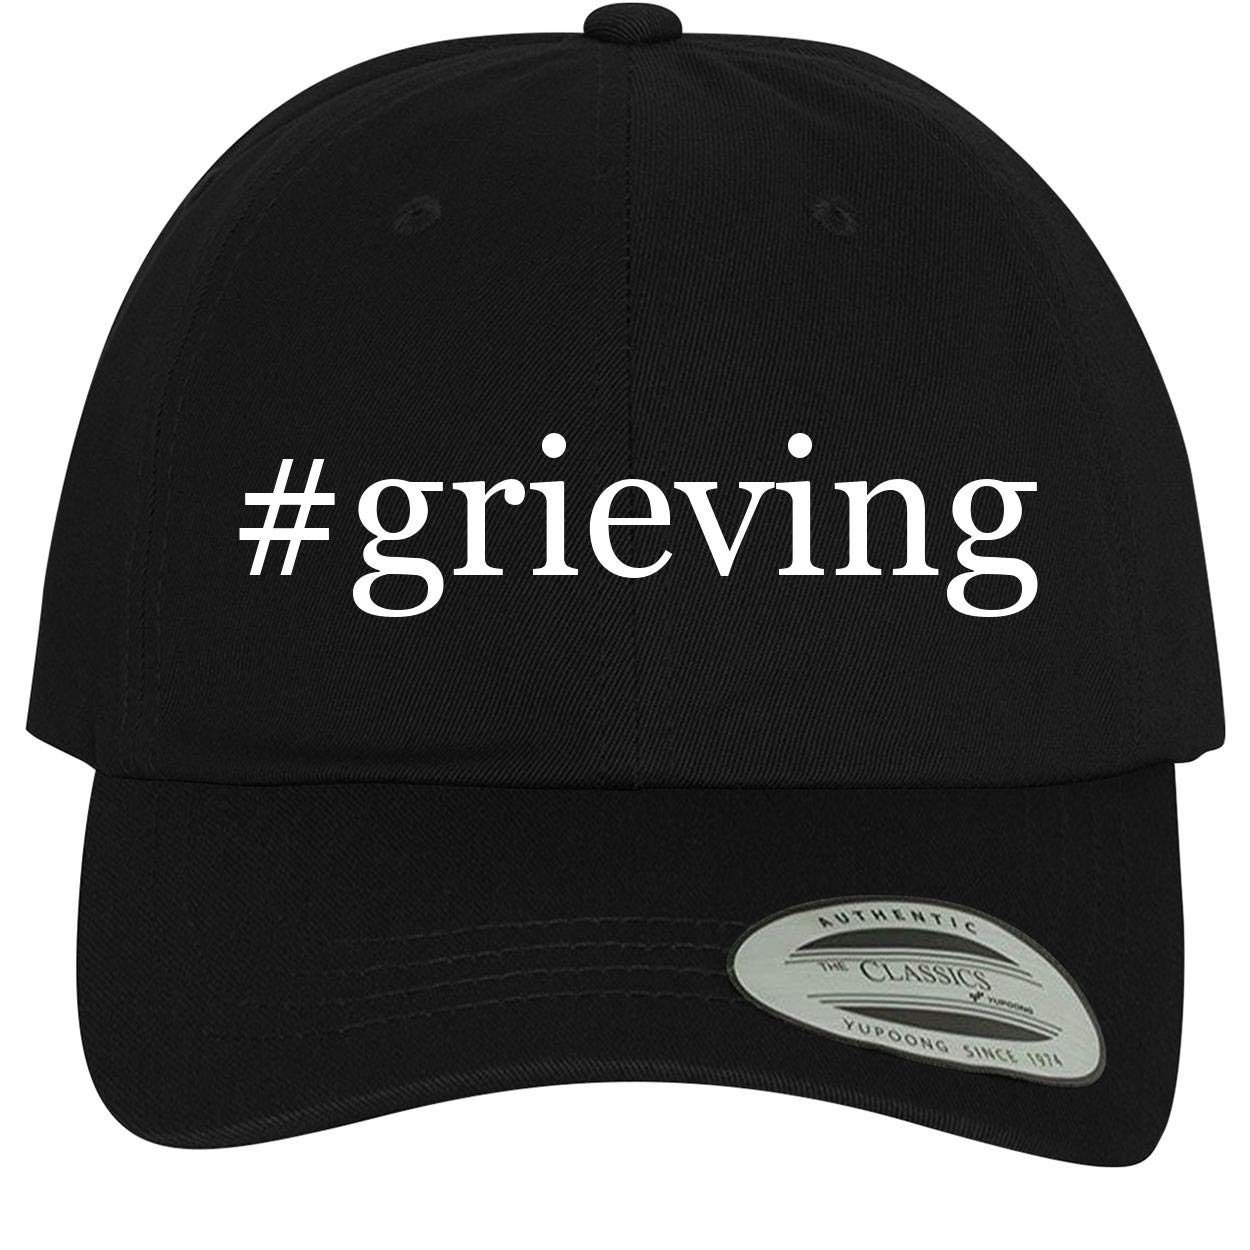 Comfortable Dad Hat Baseball Cap BH Cool Designs #Grieving